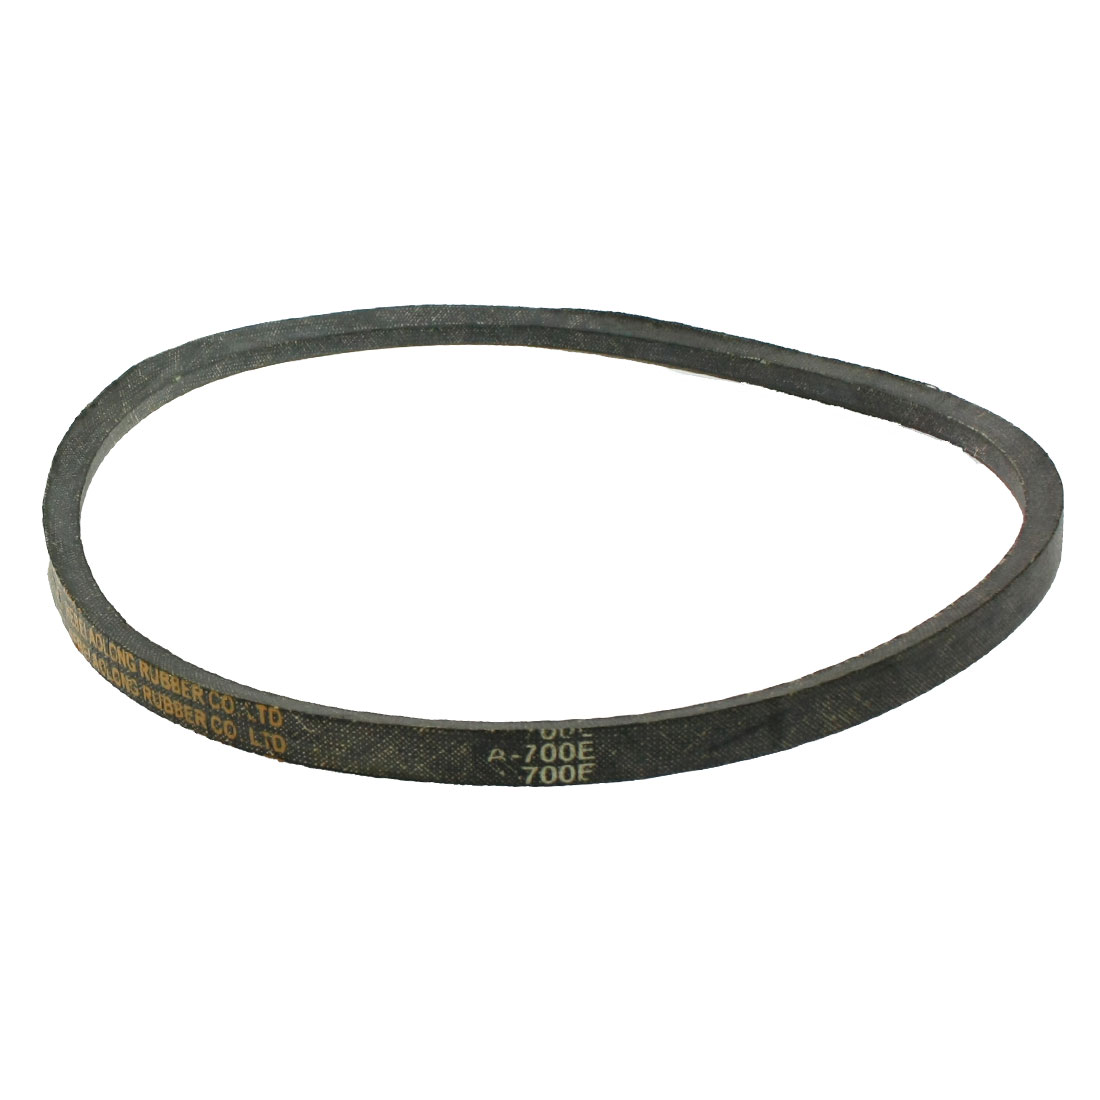 "A-700E 27 9/16"" Inner Girth V Type Rubber Transmission Belt for Washing Machine"